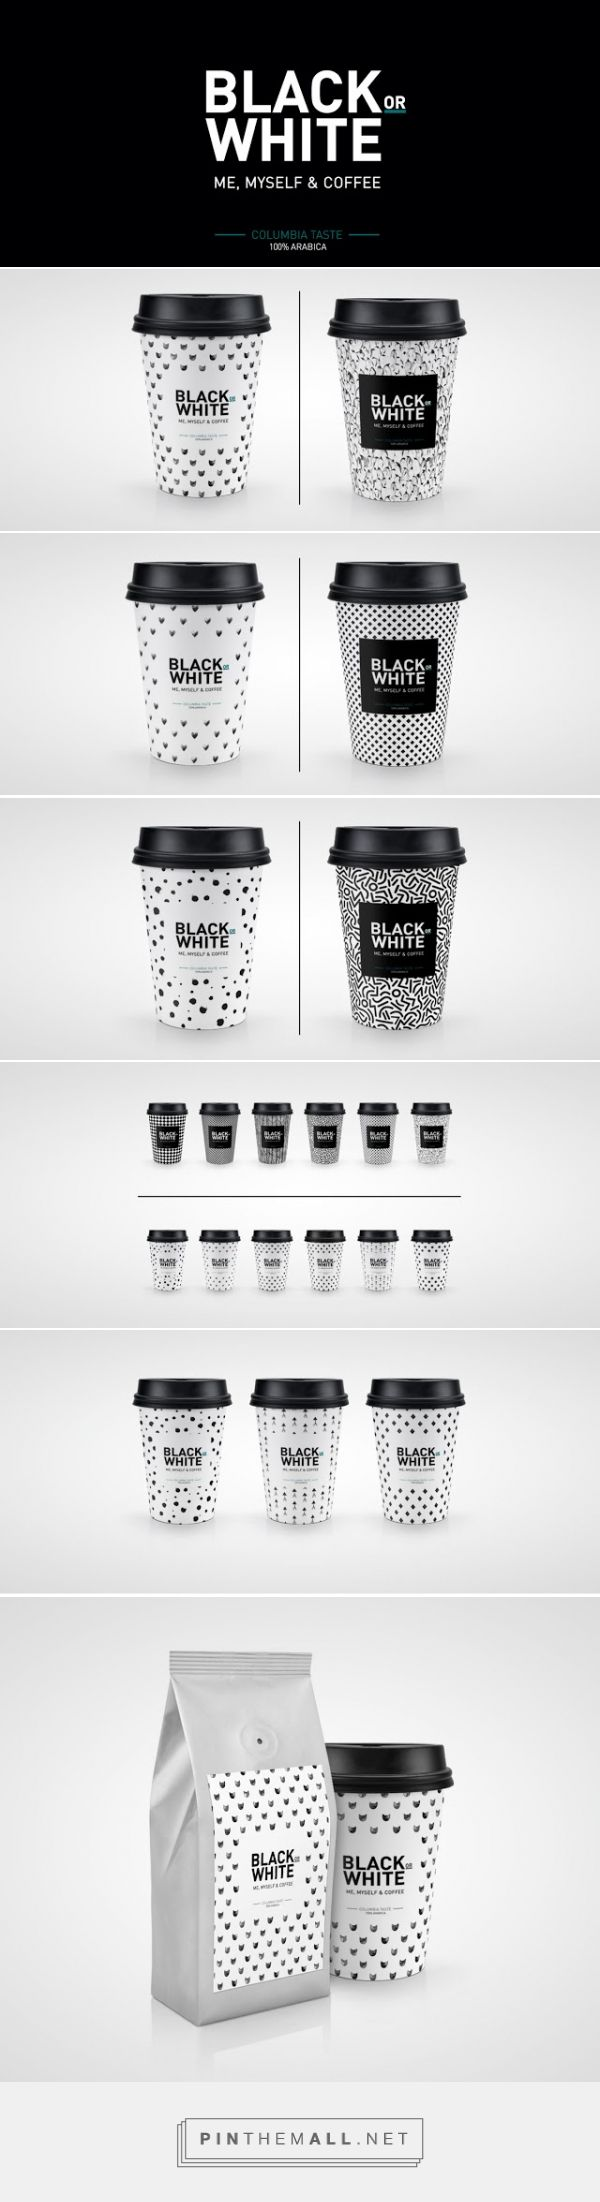 Black or White Coffee (Concept)  on Packaging of the World - Creative Package Design Gallery  - http://www.packagingoftheworld.com/2015/07/black-or-white-coffee-concept.html